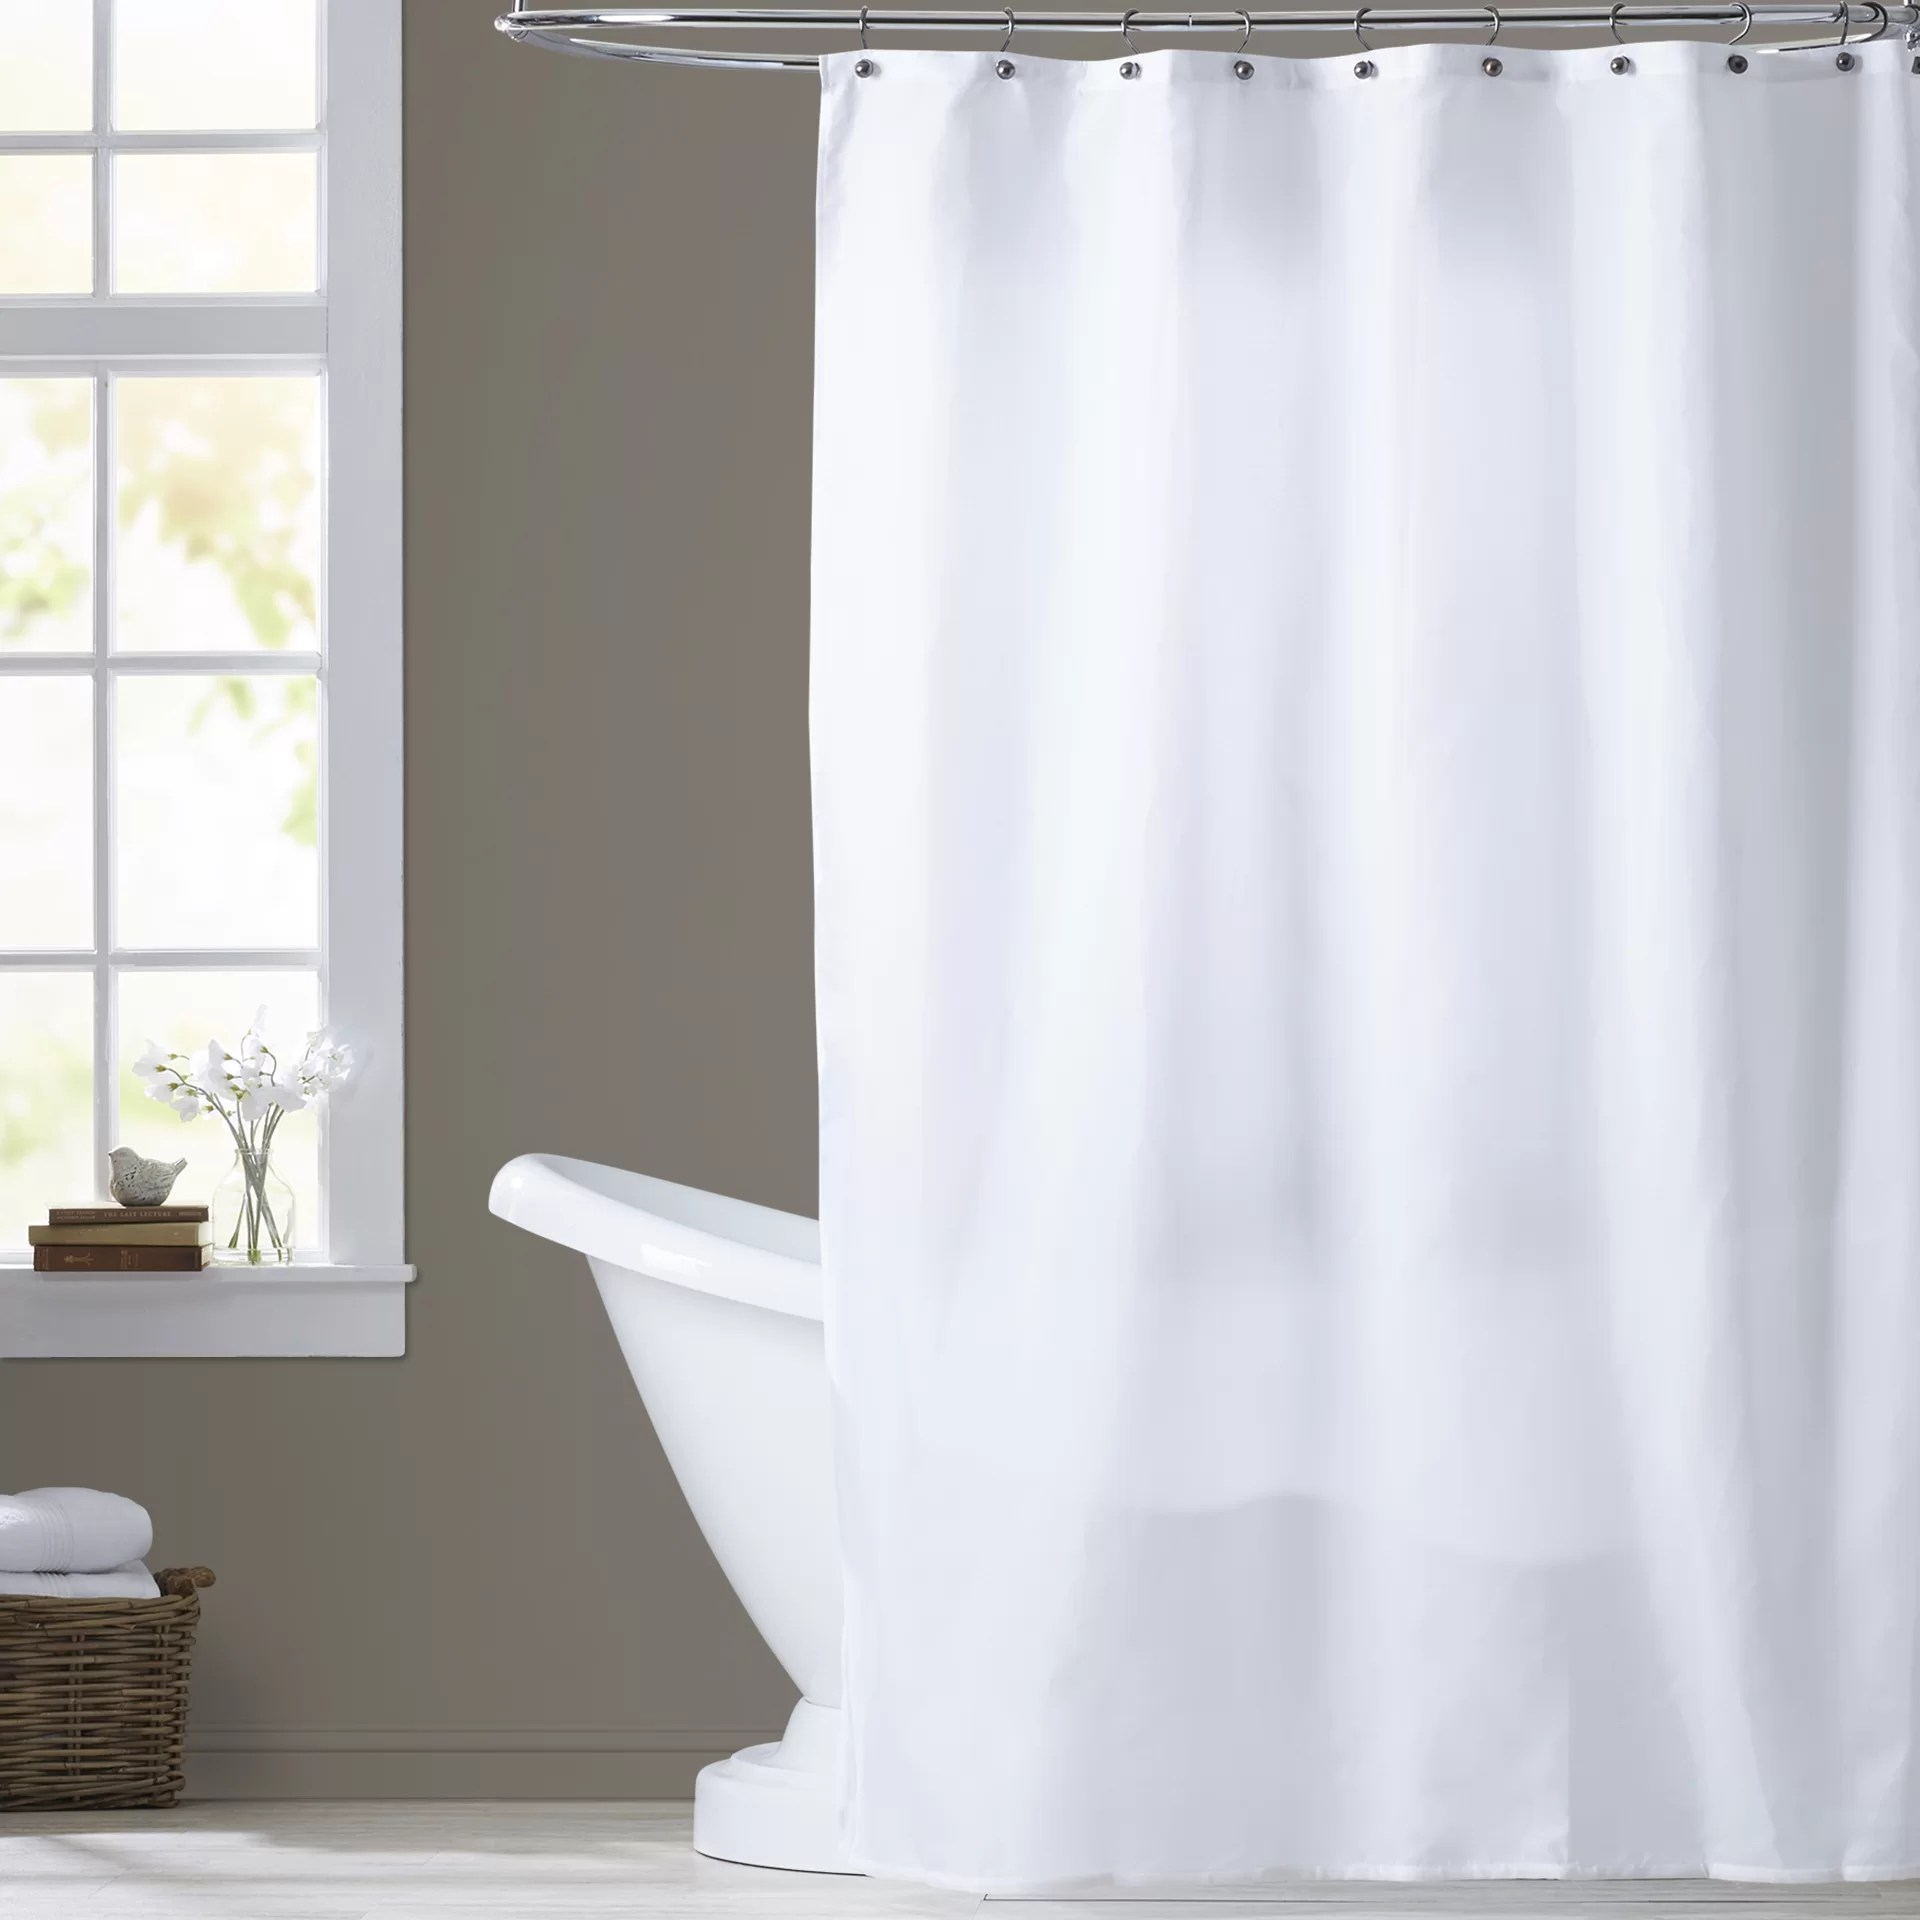 Excellent Removing Mold From Shower Curtain Ideas - Bathroom with ...